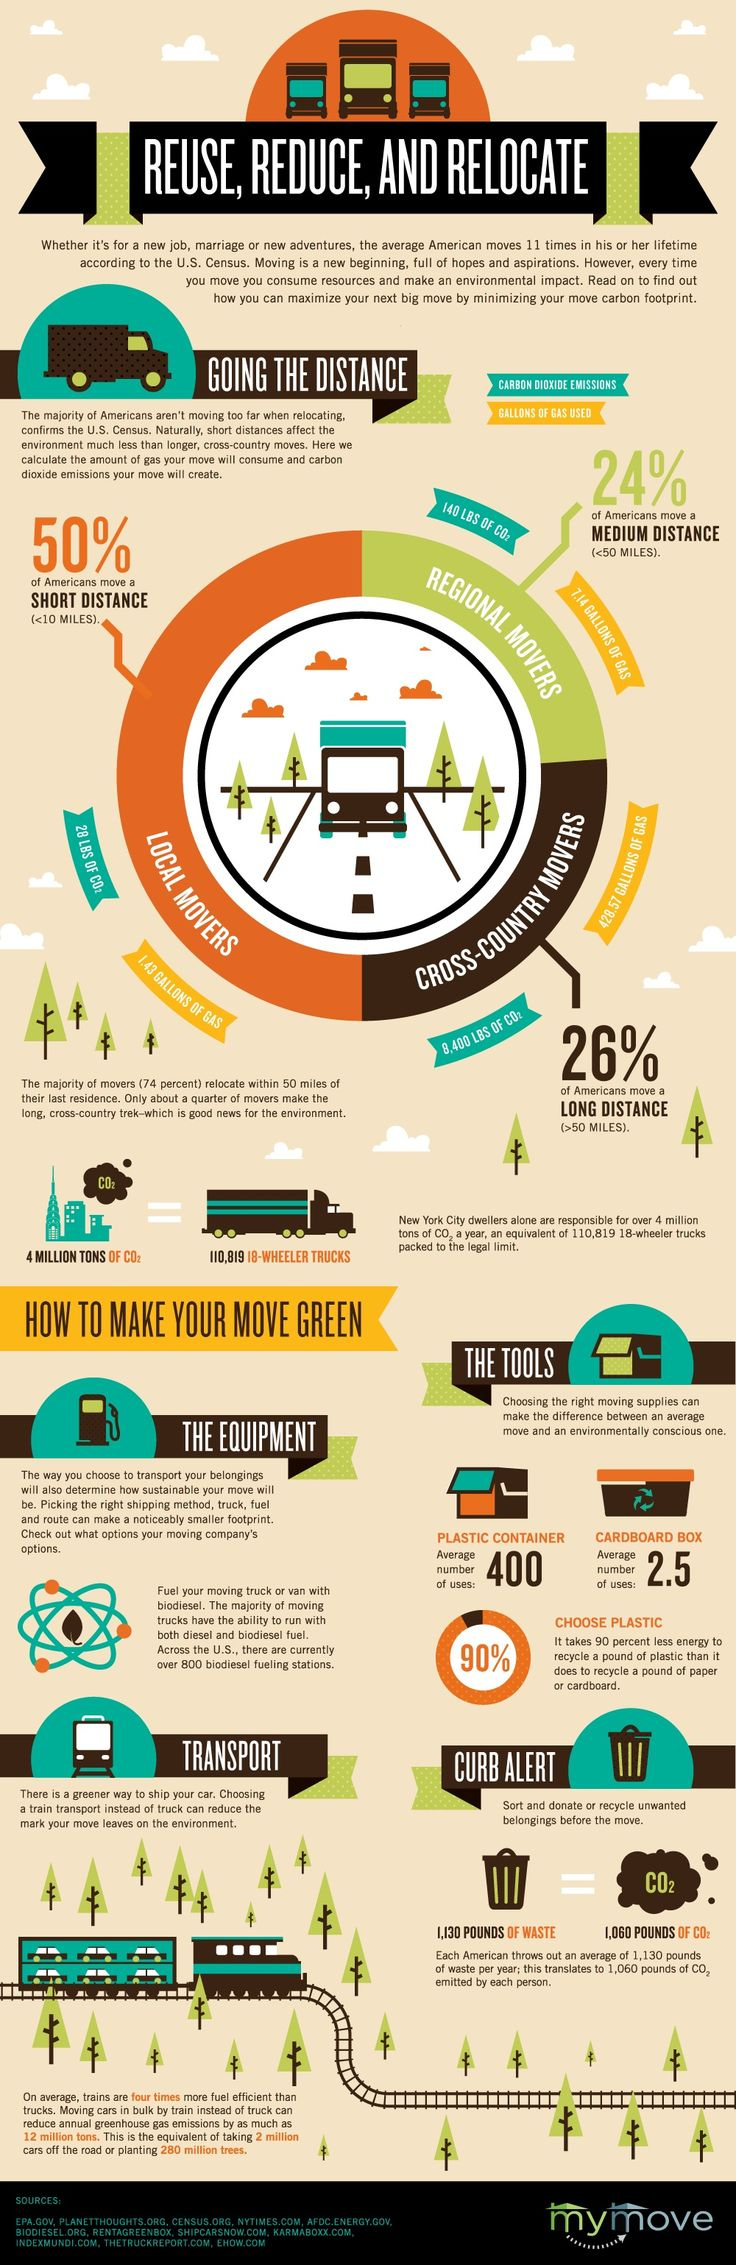 Reuse, Reduce and Relocate: How to #green your move. #moving #ecofriendly